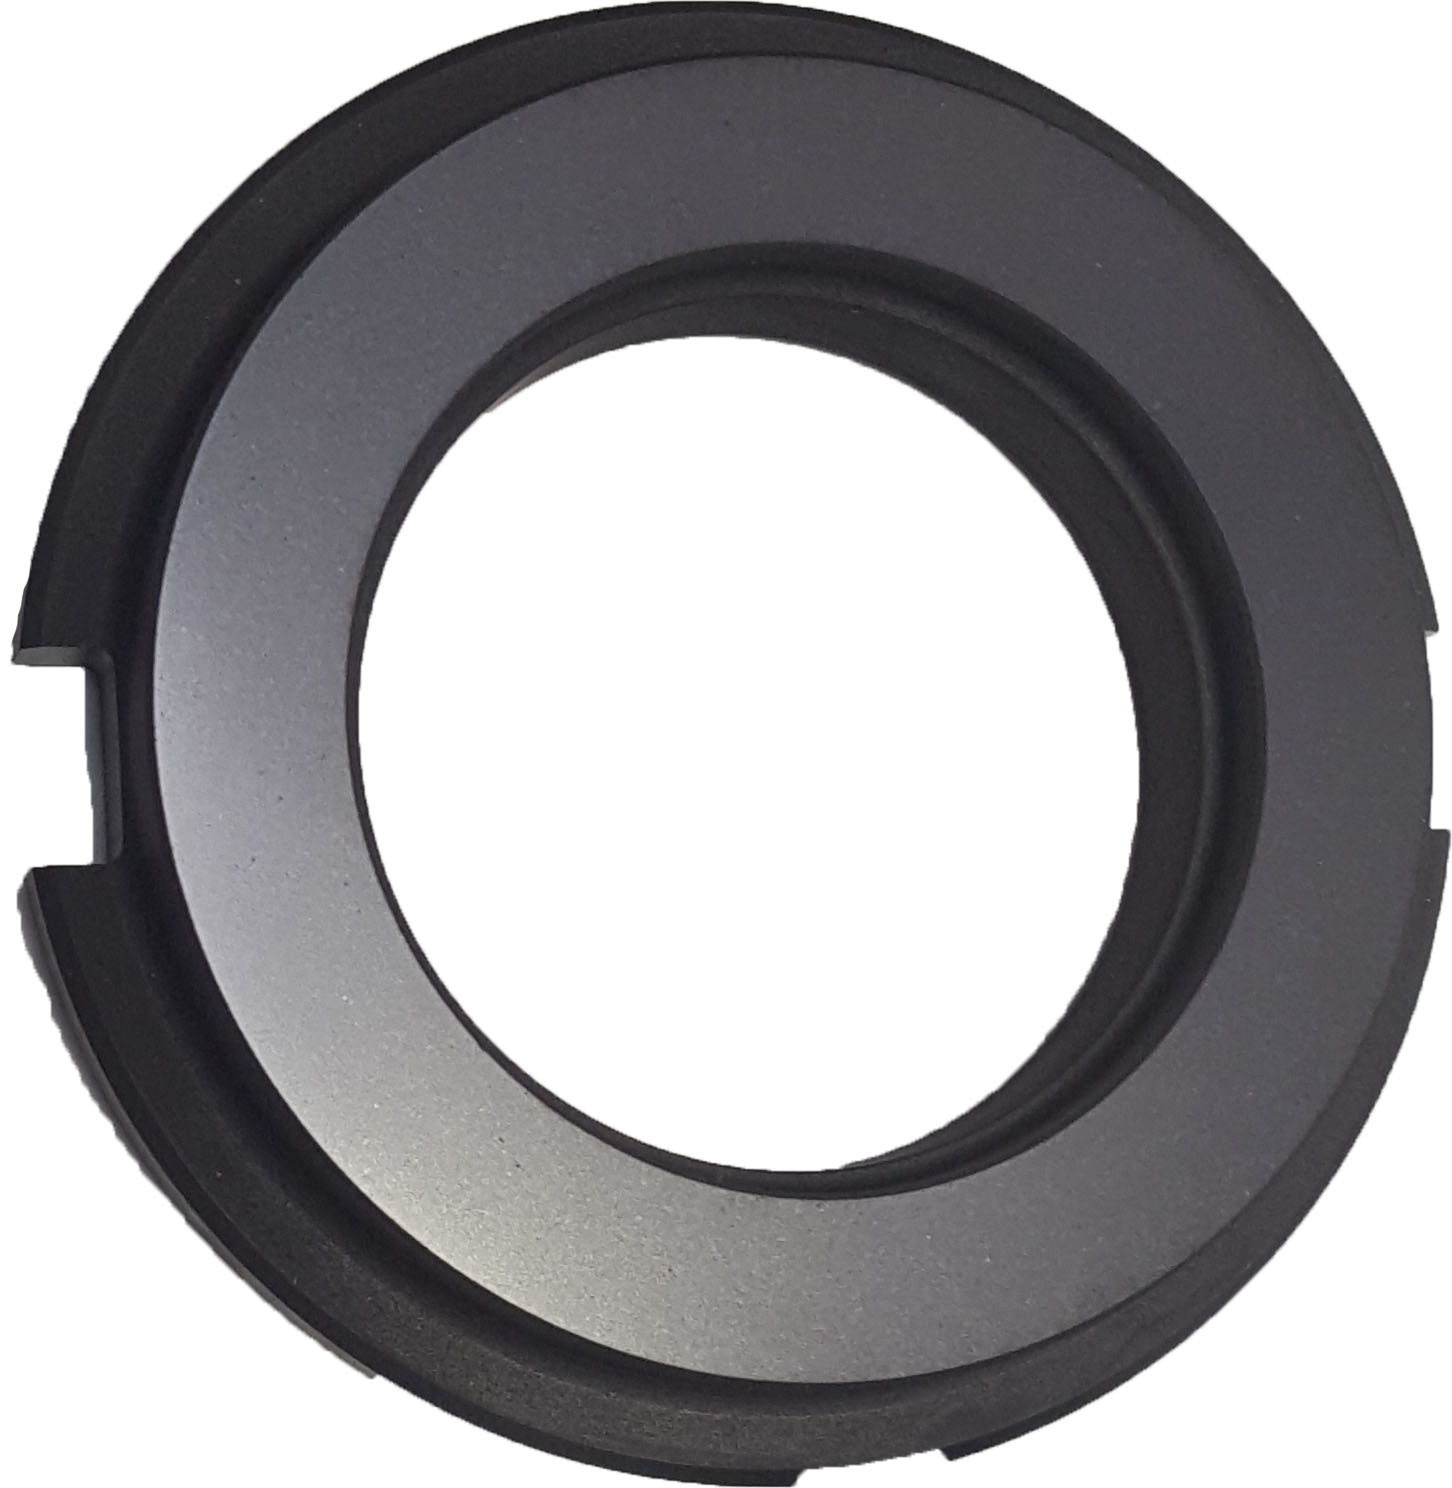 - 959199-SDP - Graphite Washer